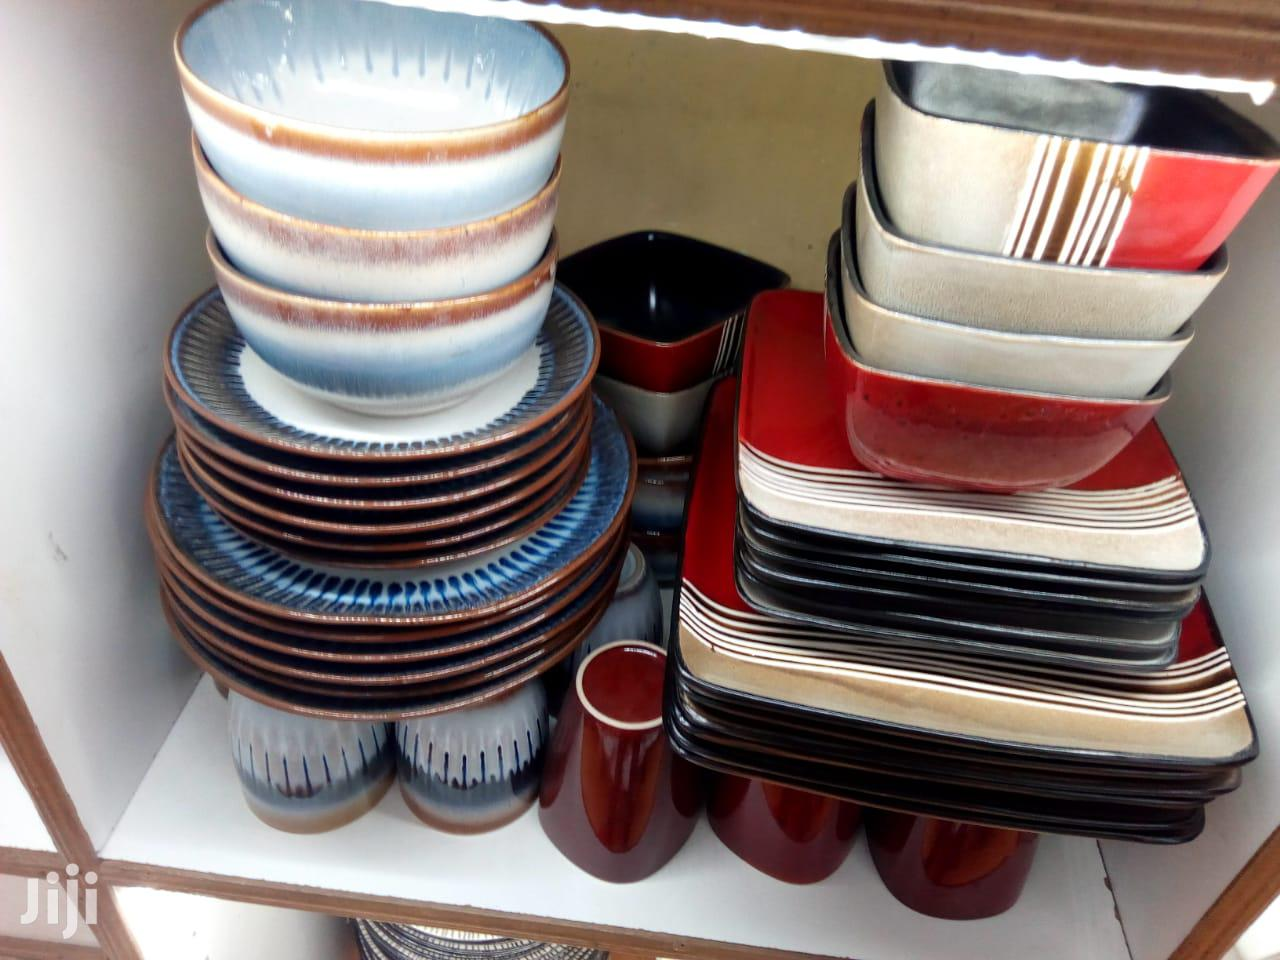 24pc Ceramic Dinner Set/ Dinner Set | Kitchen & Dining for sale in Nairobi Central, Nairobi, Kenya